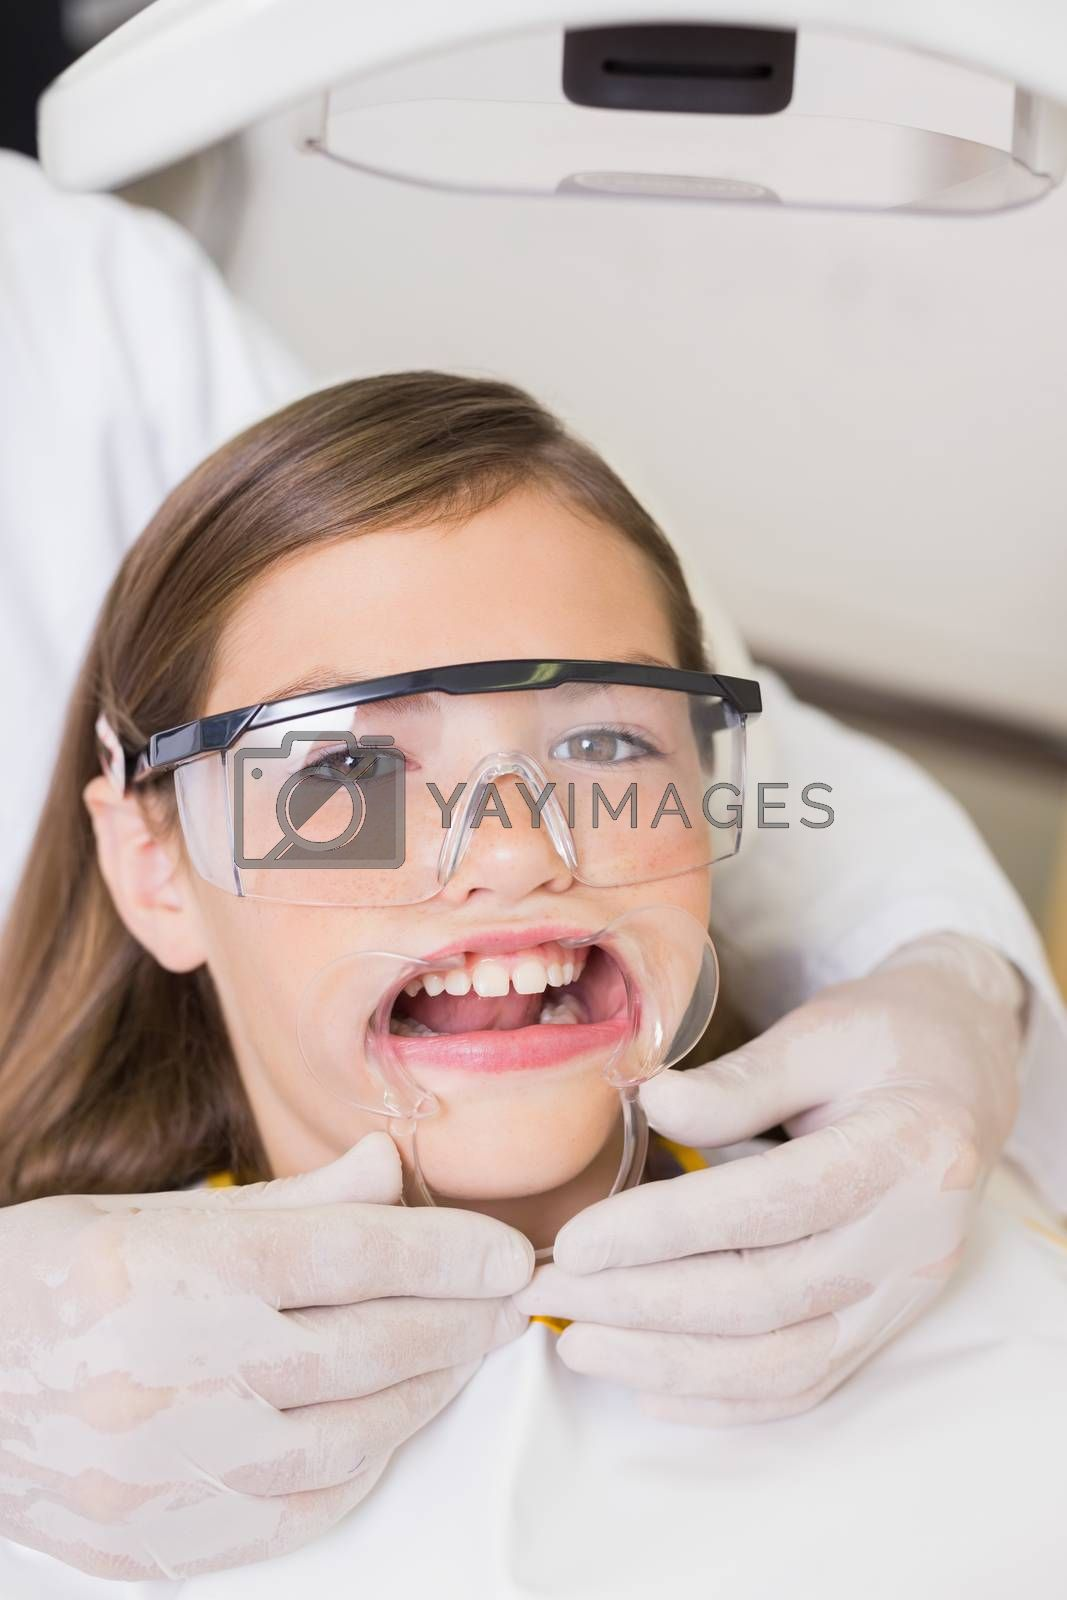 Dentist putting mouth retractor on little girl at the dental clinic